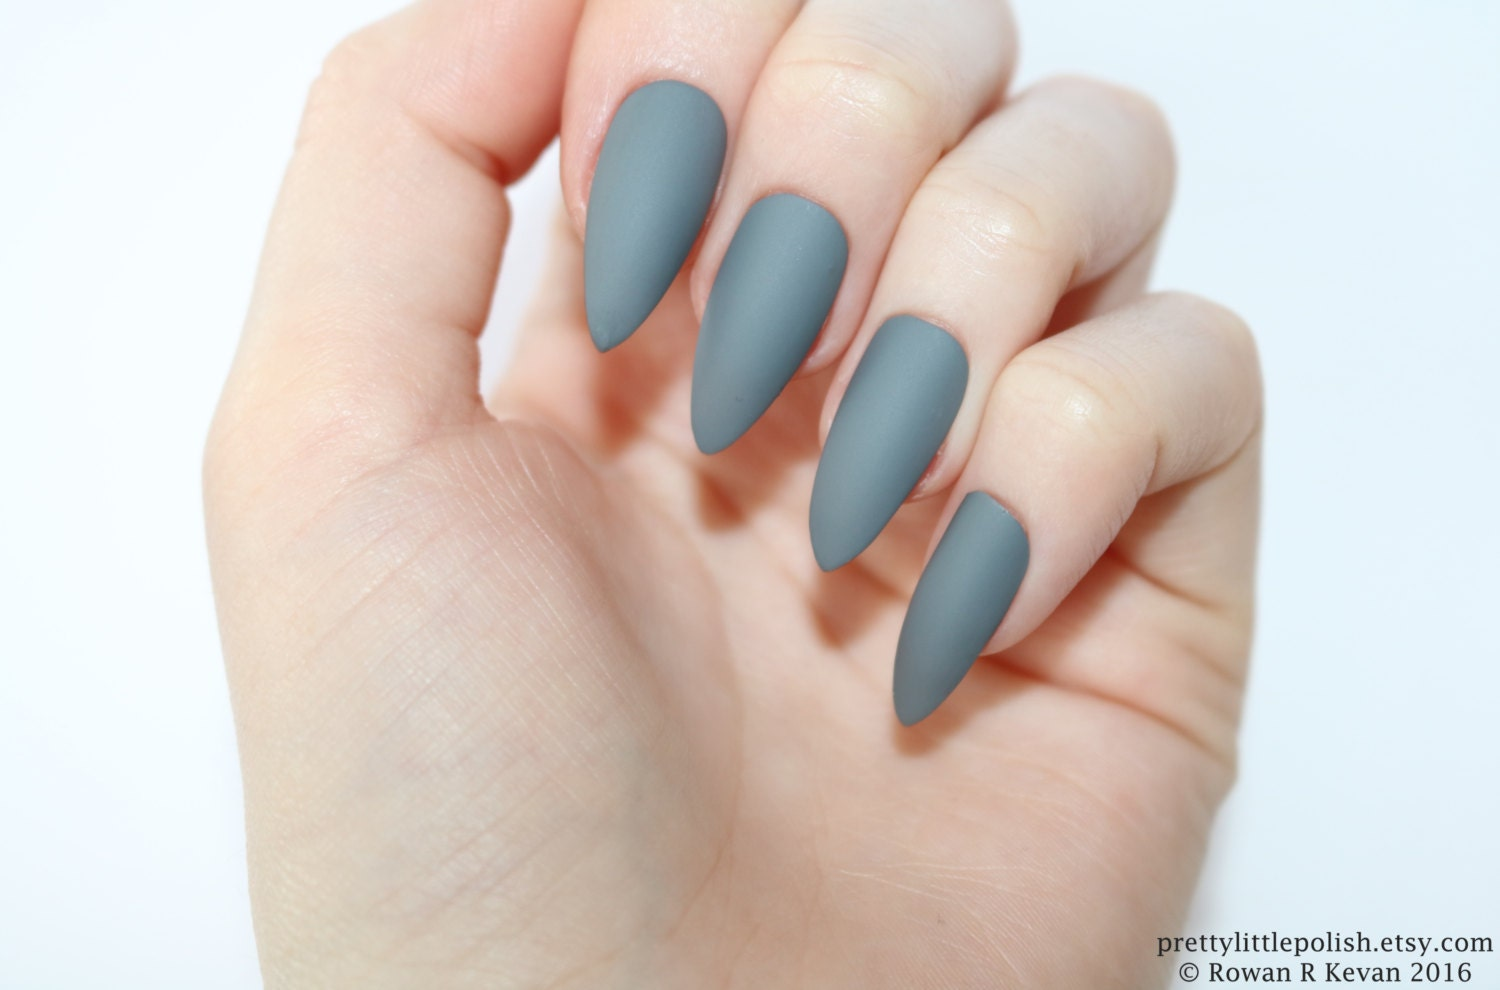 Stiletto nails Matte grey stiletto nails Fake nails Press